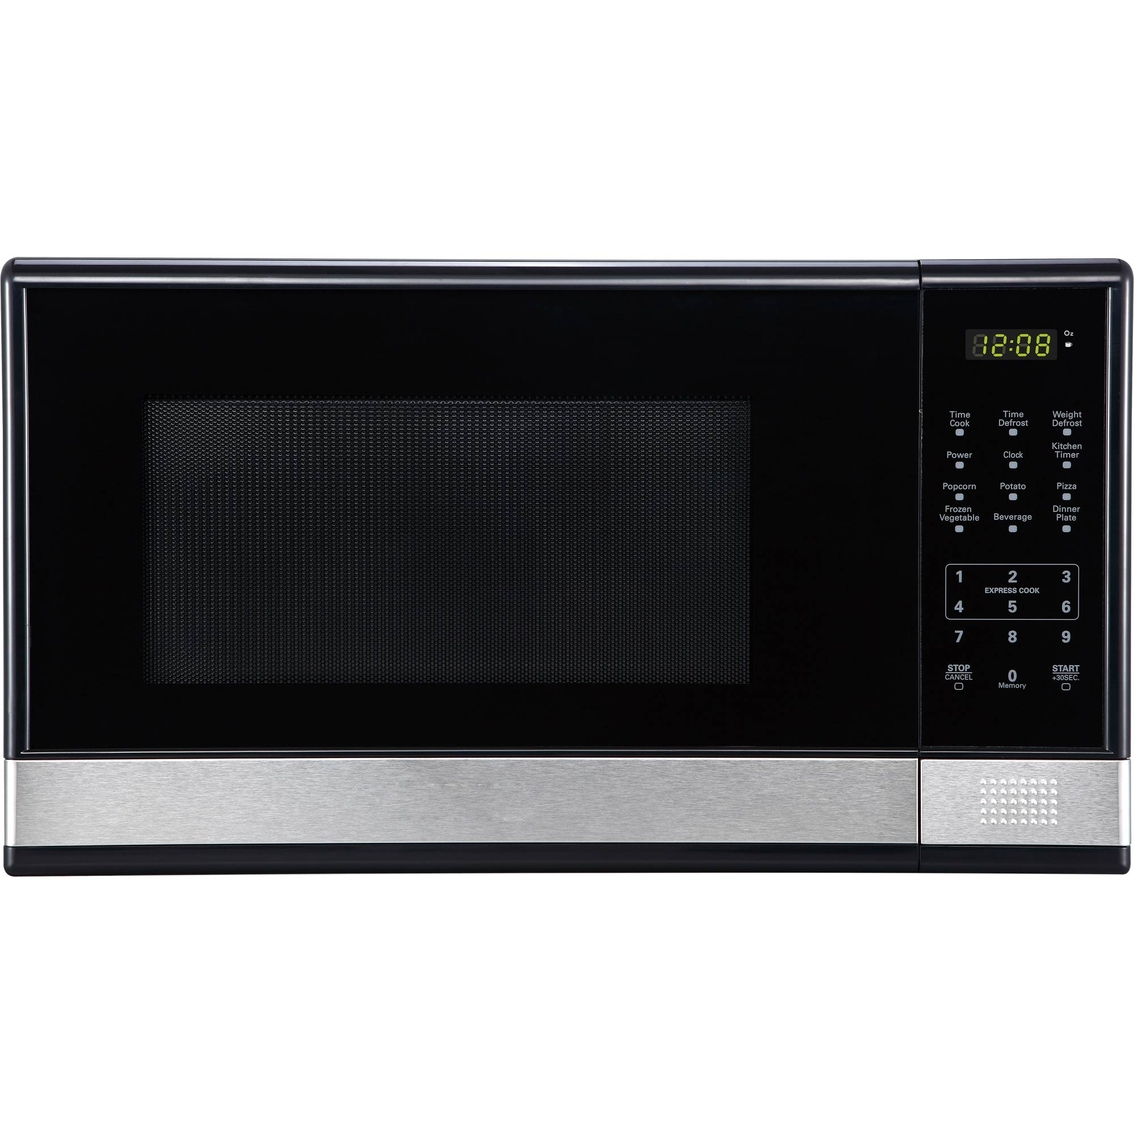 simply perfect 1 1cf microwave oven stainless steel